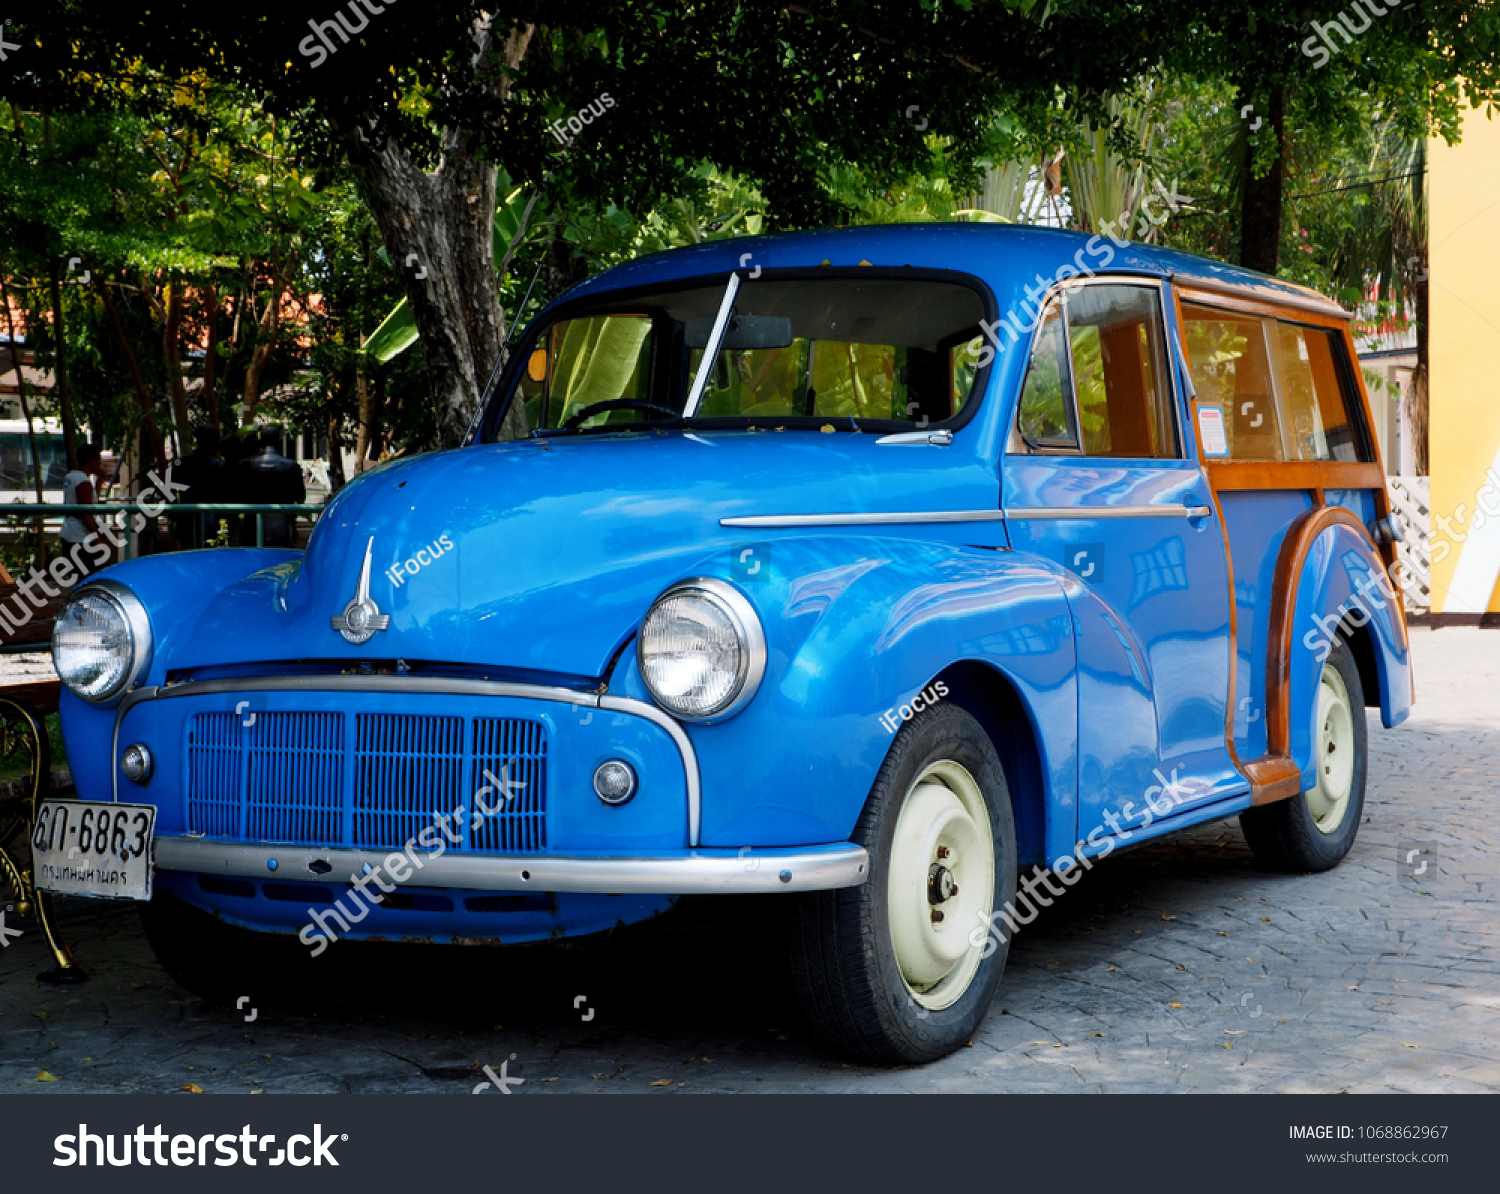 PUTTHAMONTHON, NAKHON PATHOM, THAILAND - APRIL 15, 2018: A Morris Minor 1000 Traveller is exhibited at the outdoor venue at Film Archive on April 15, 2018, in Putthamonthon, Nakhon Pathom, Thailand.